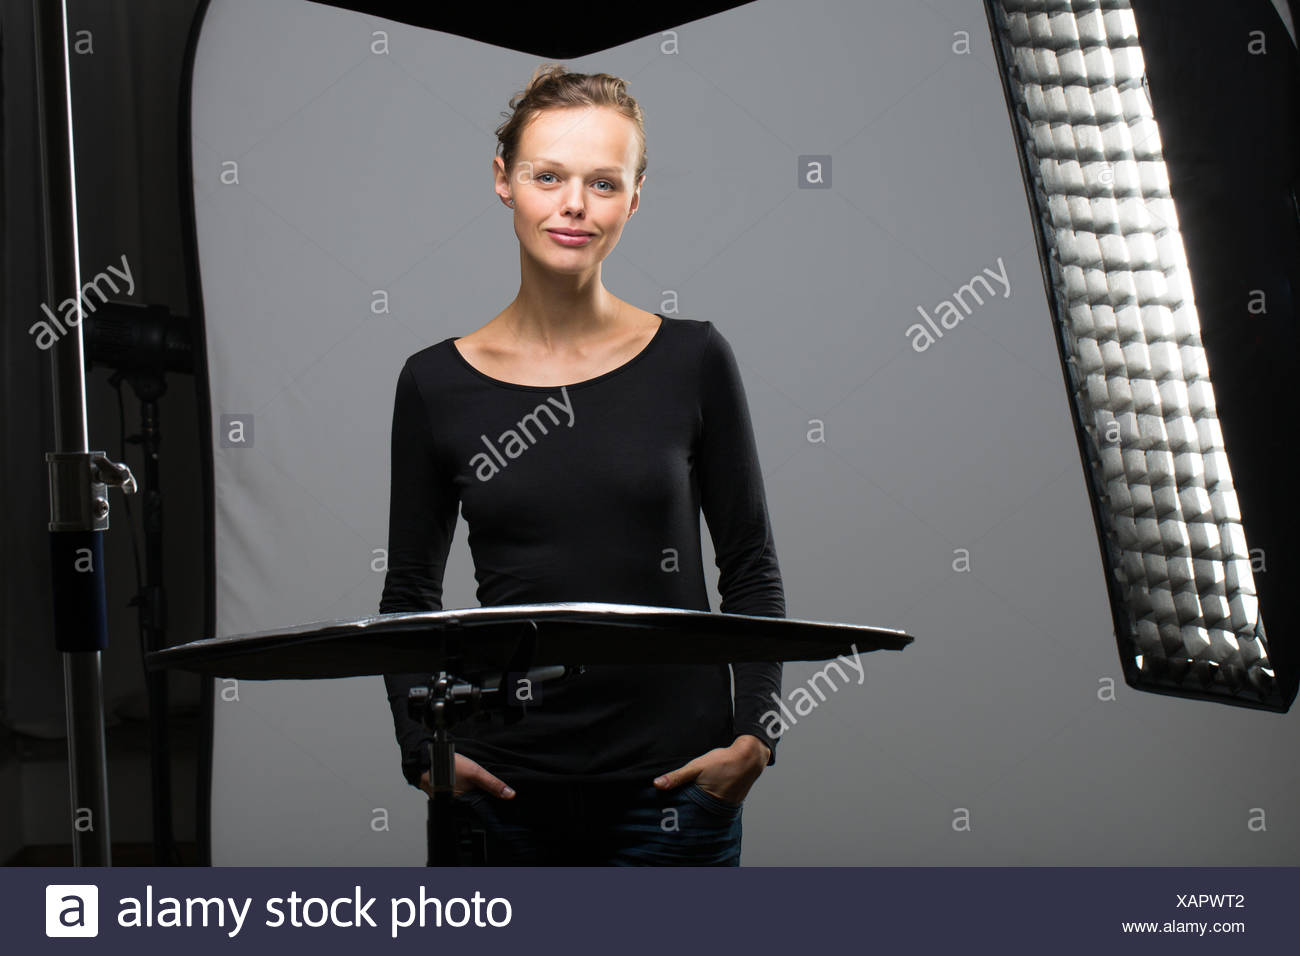 Beautiful female model posing in a photographic studio surrounded by professional strobe lights Stock Photo